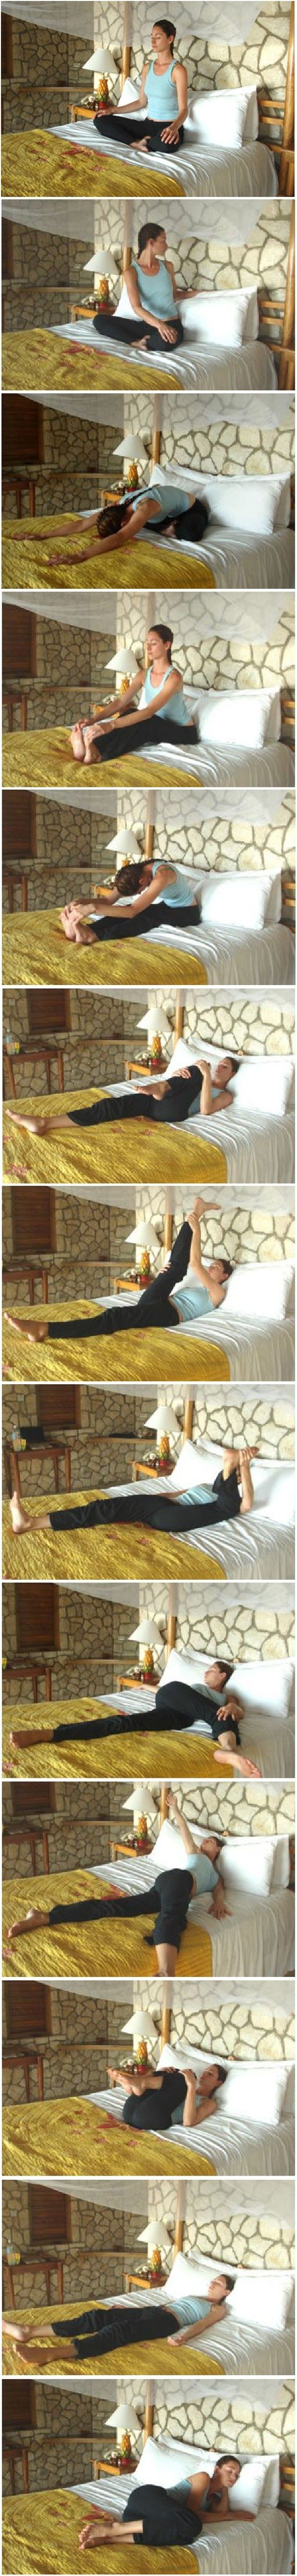 This is really the best pin of this bedtime yoga routine, with all the pictures in a row instead of at different pages!